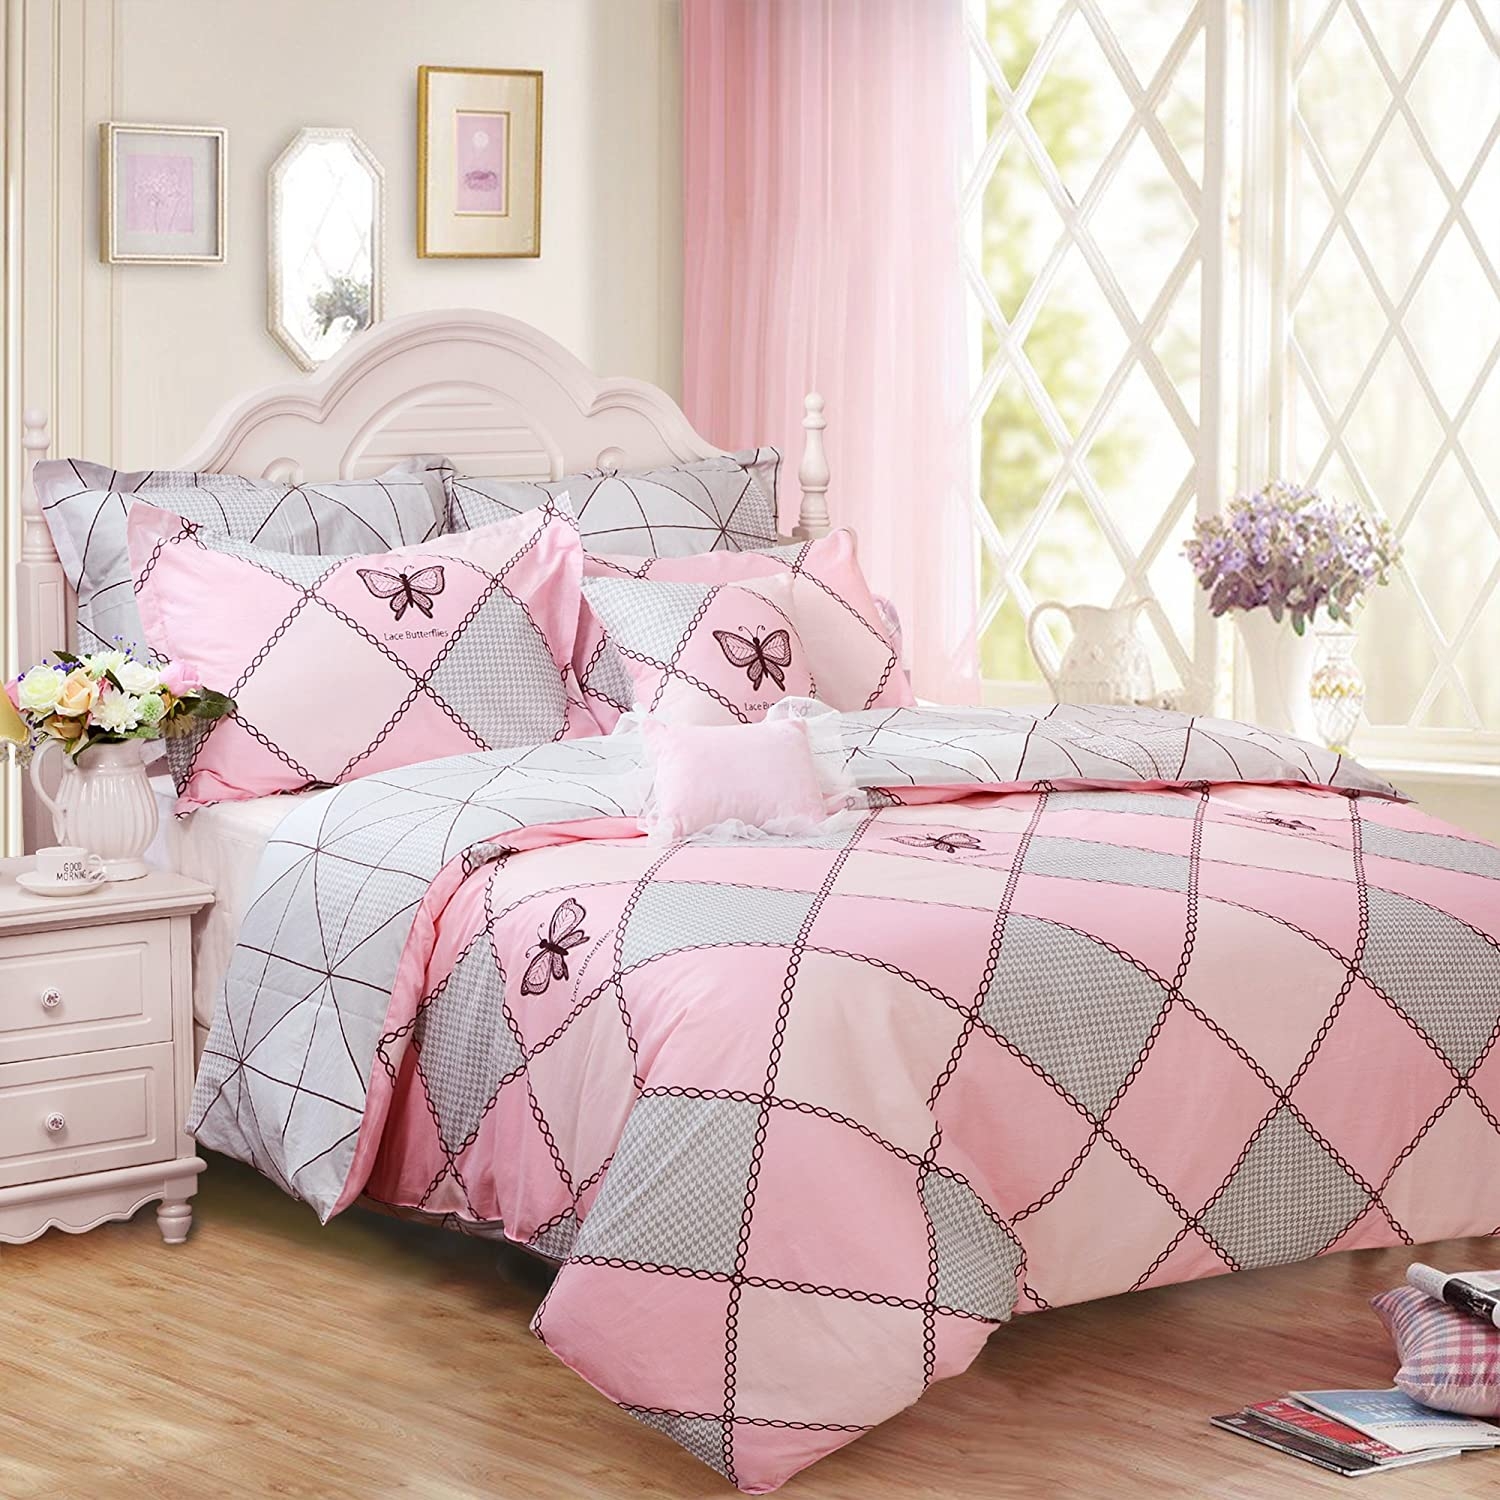 Brandream Girls Pink Bedding Butterfly Toddler Bedding King Size Duvet Cover Set